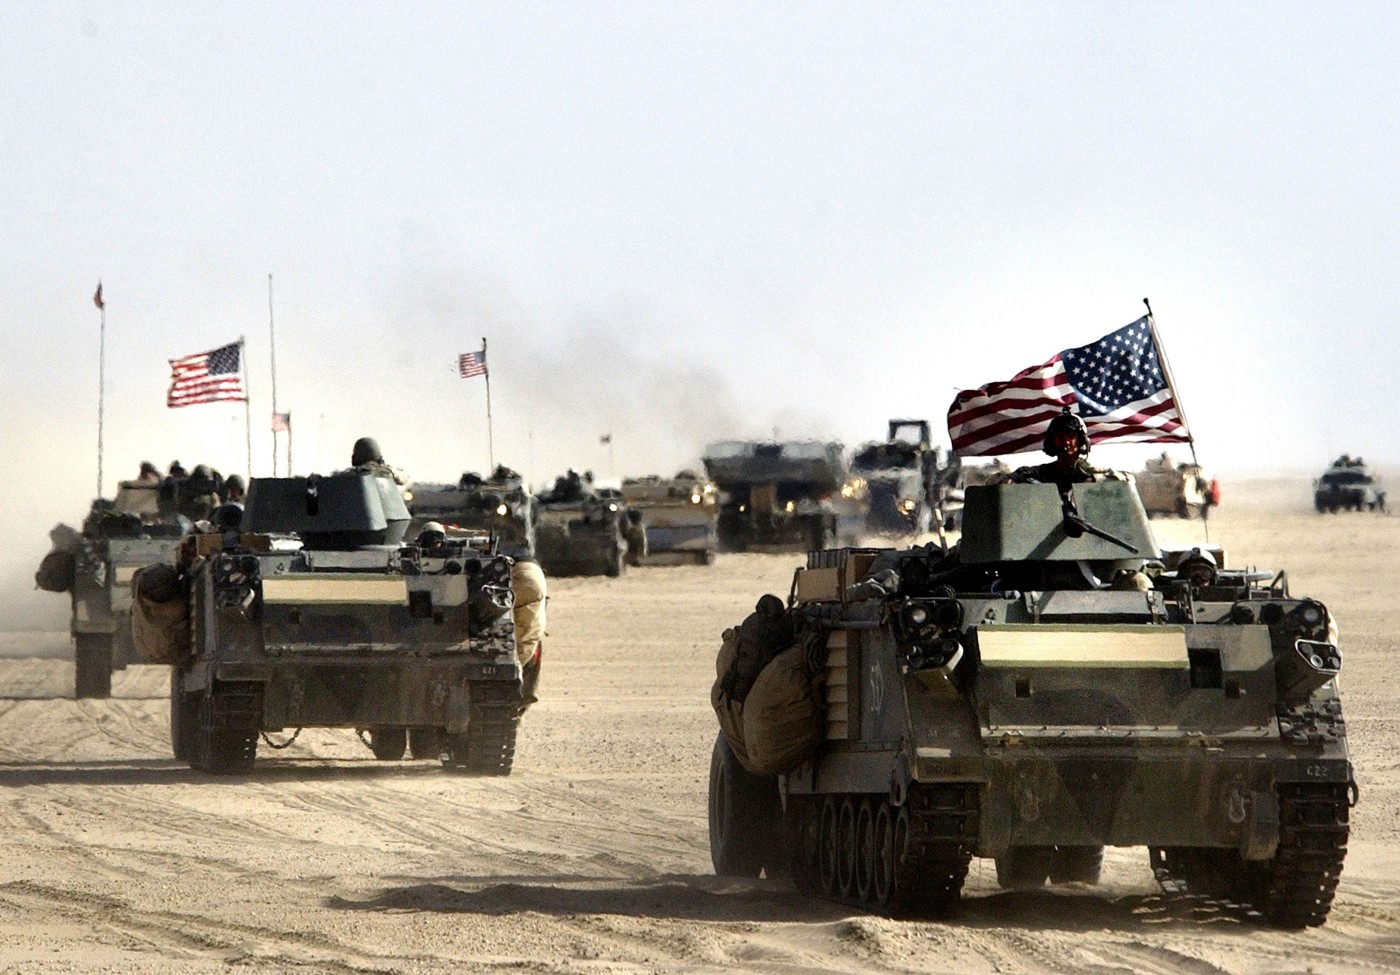 U.S. Army 11th Engineers move into position ahead of a possible military strike near Kuwait-Iraq border on March 18, 2003.